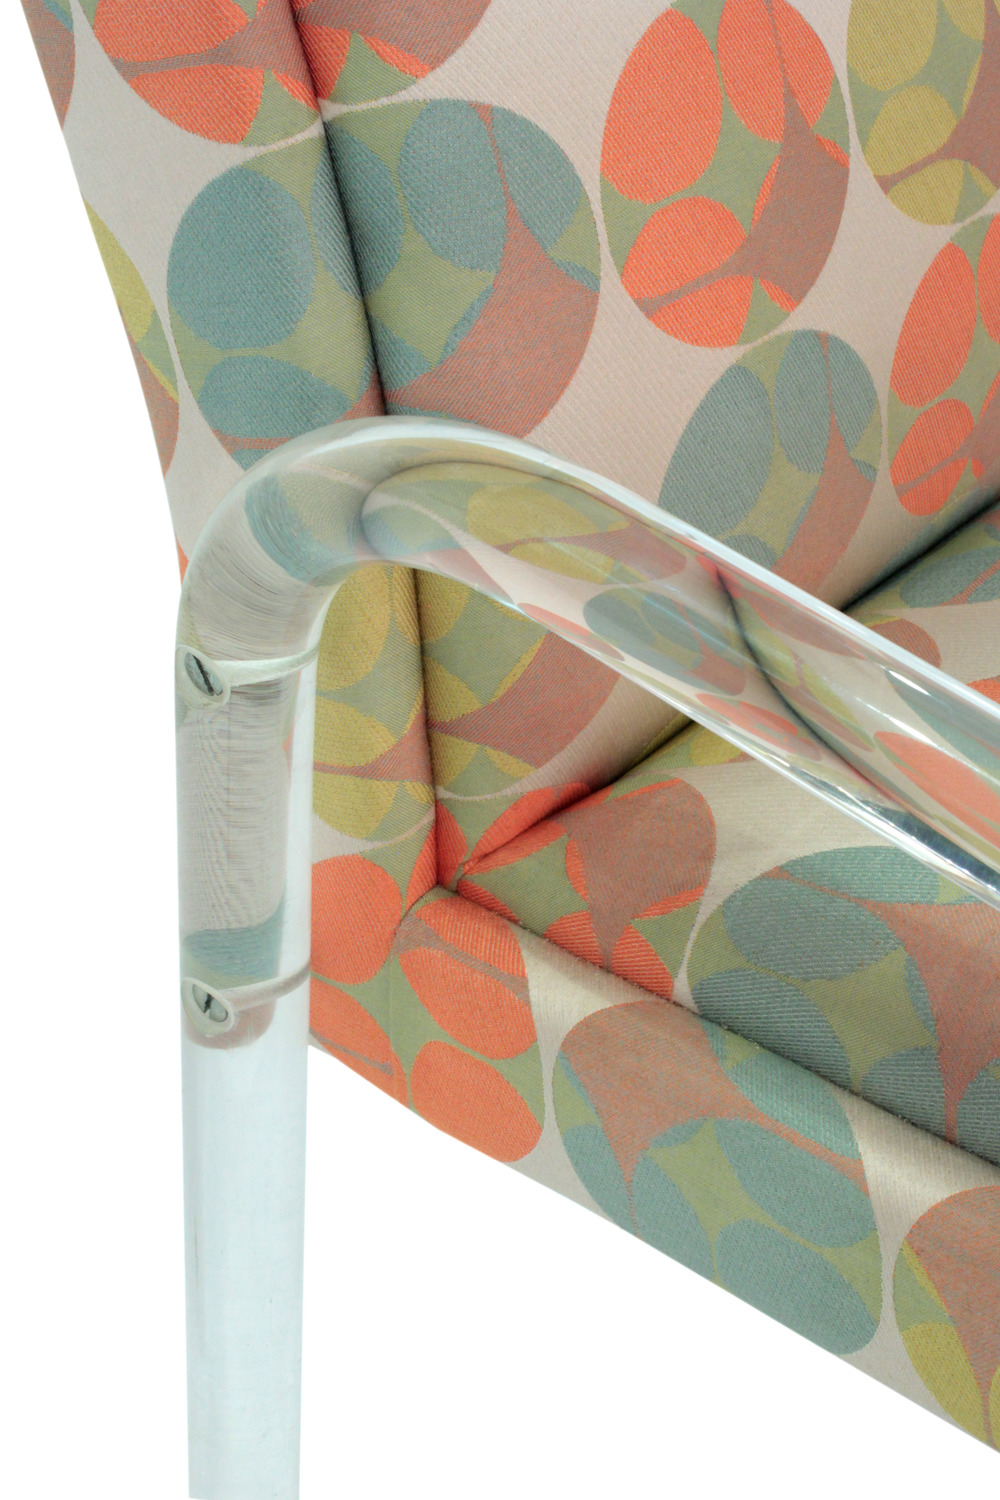 70s 60 geometric fabrics etof4 lucite arms diningchairs55 detail3 hires.jpg